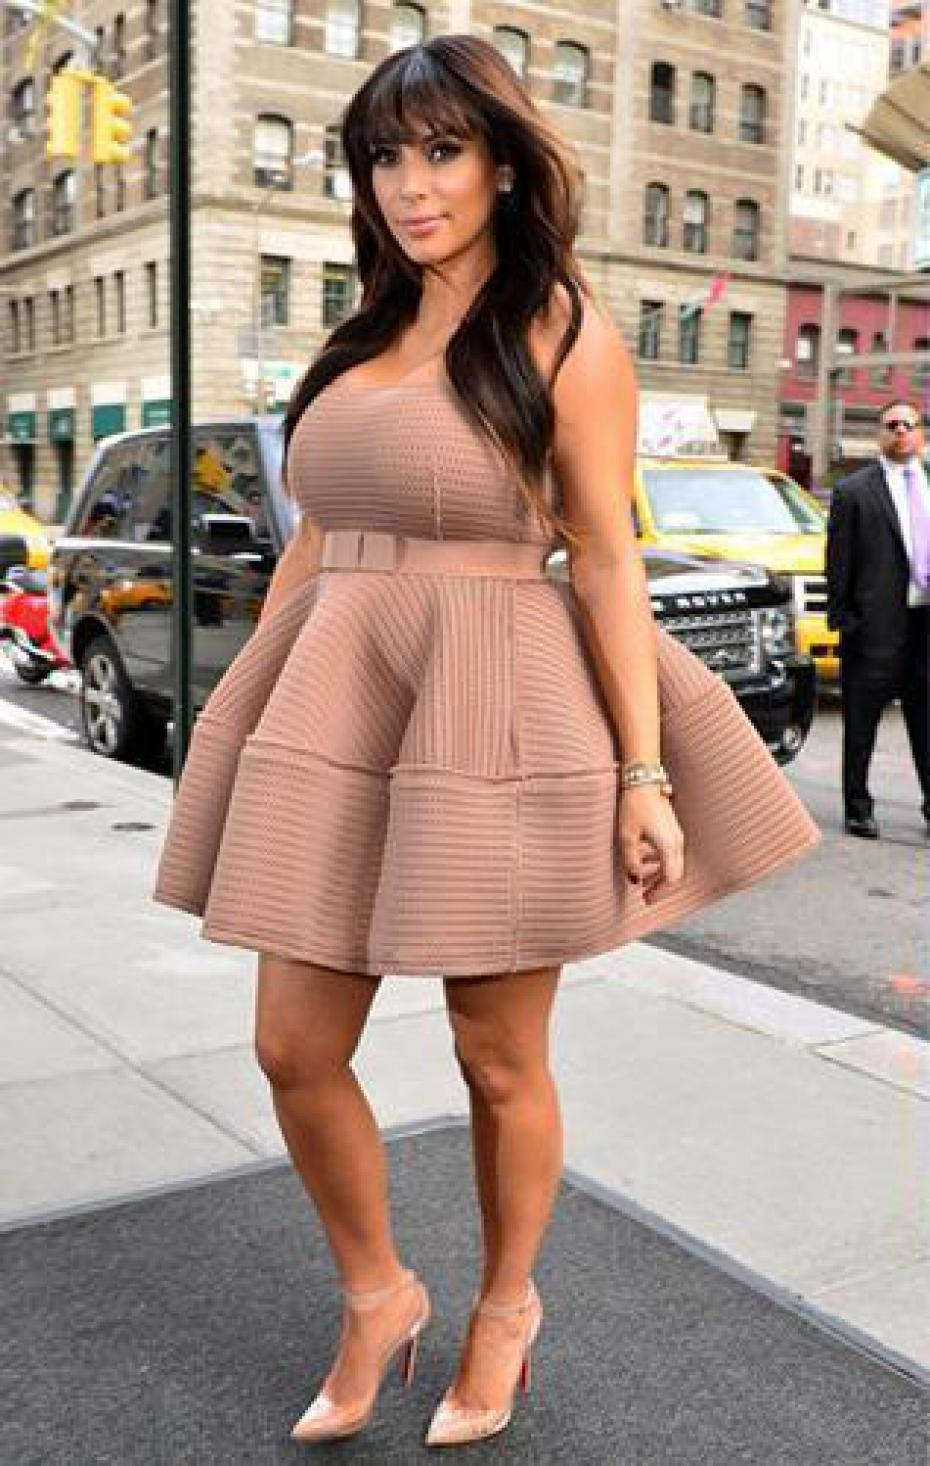 kim-kardashian-enceinte-devant-les-studios New York a source of Inspiration #1